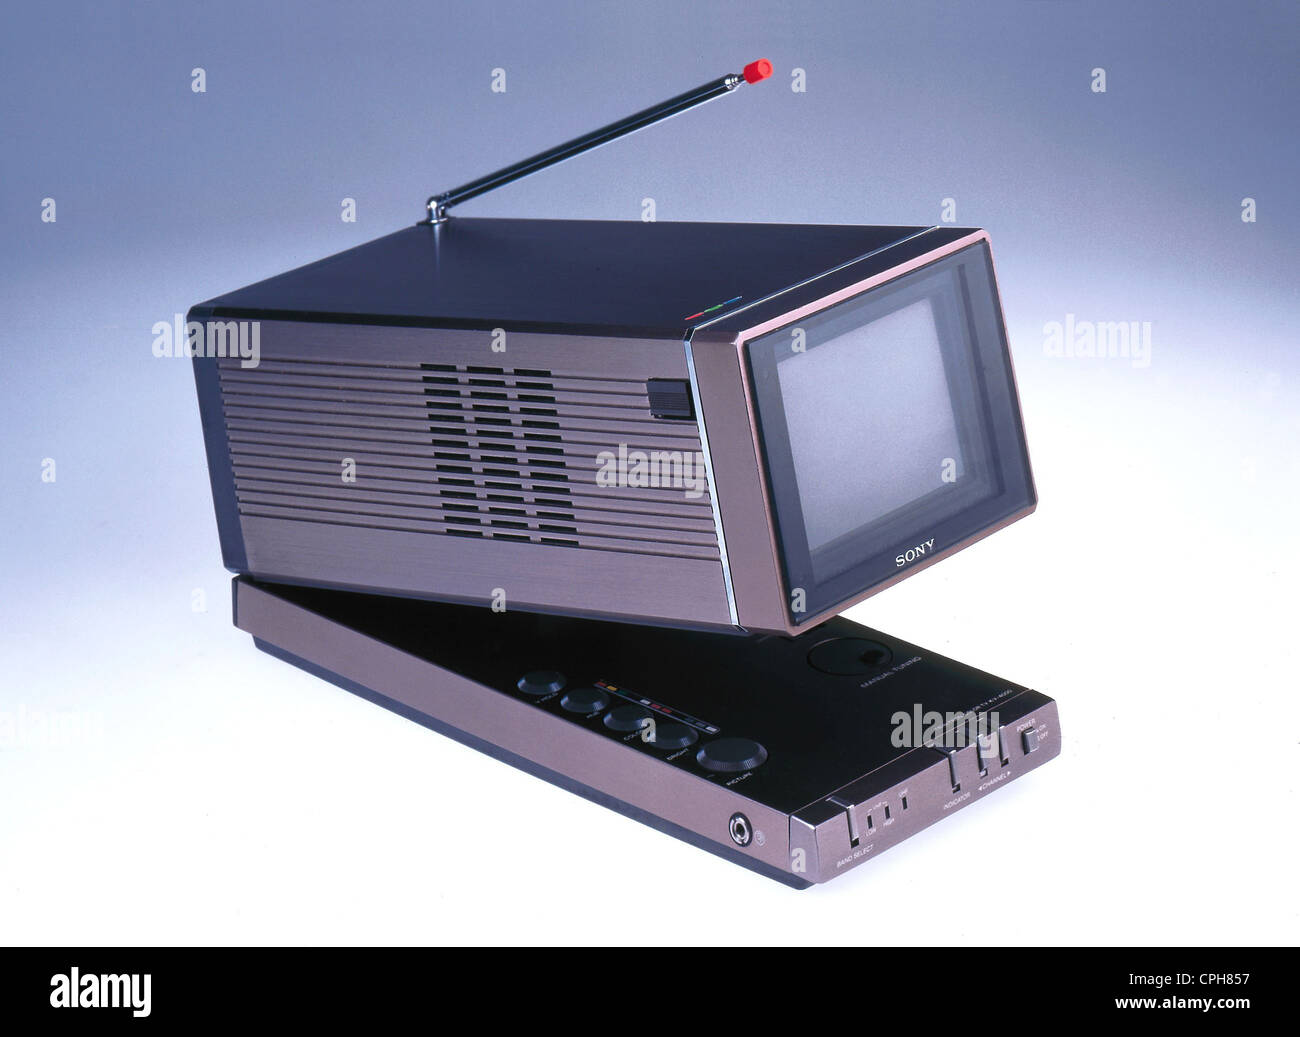 sony tv small. stock photo - broadcast, television, colour tv set sony kv-4000, trinitron color receiver, first small set, japan, 1980, design tv s